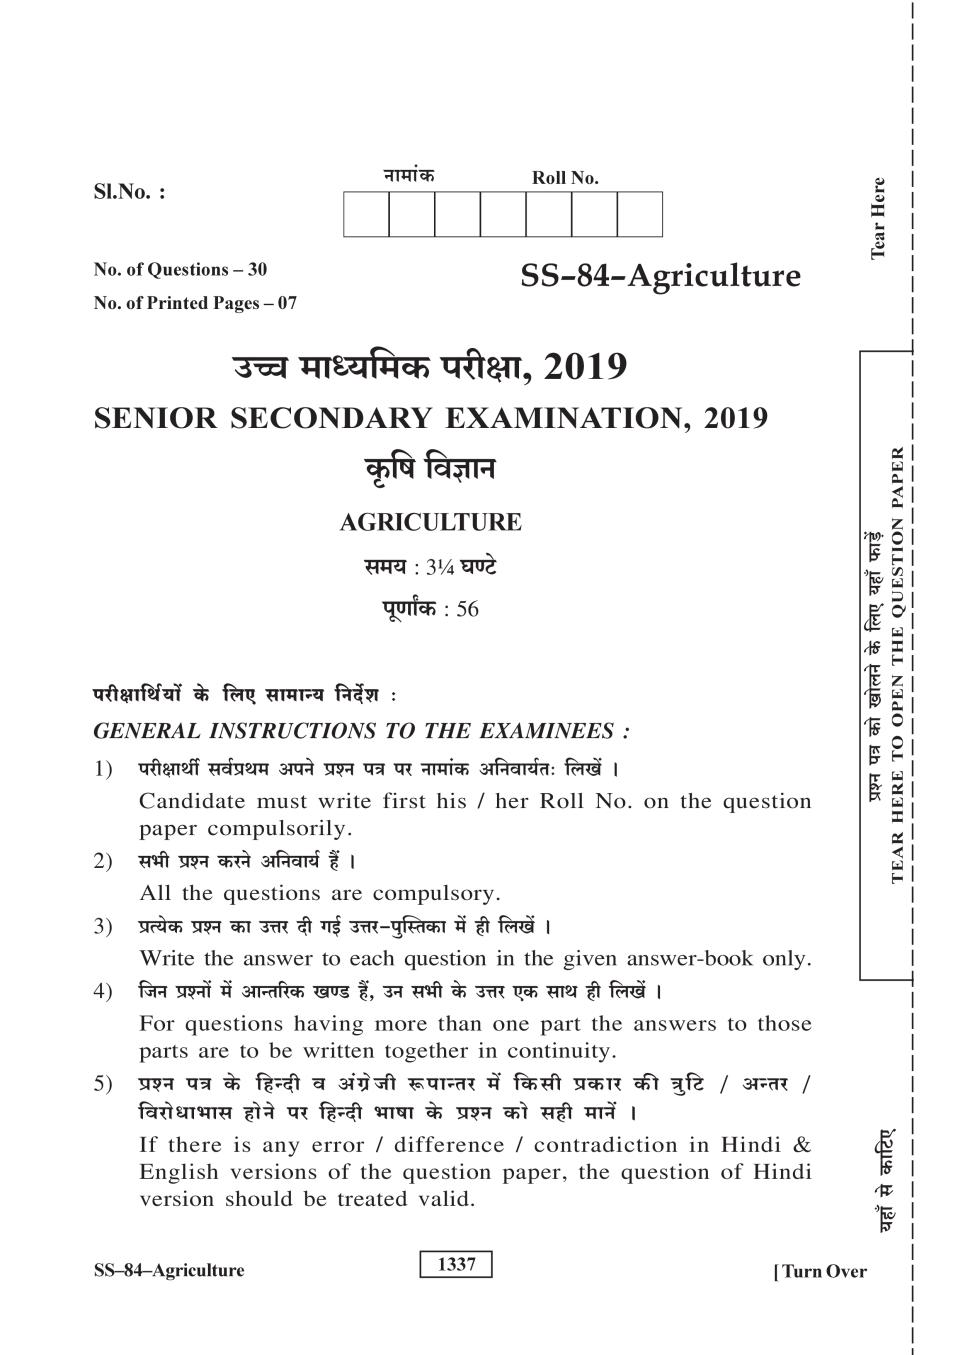 Rajasthan Board Sr. Secondary Agriculture Question Paper